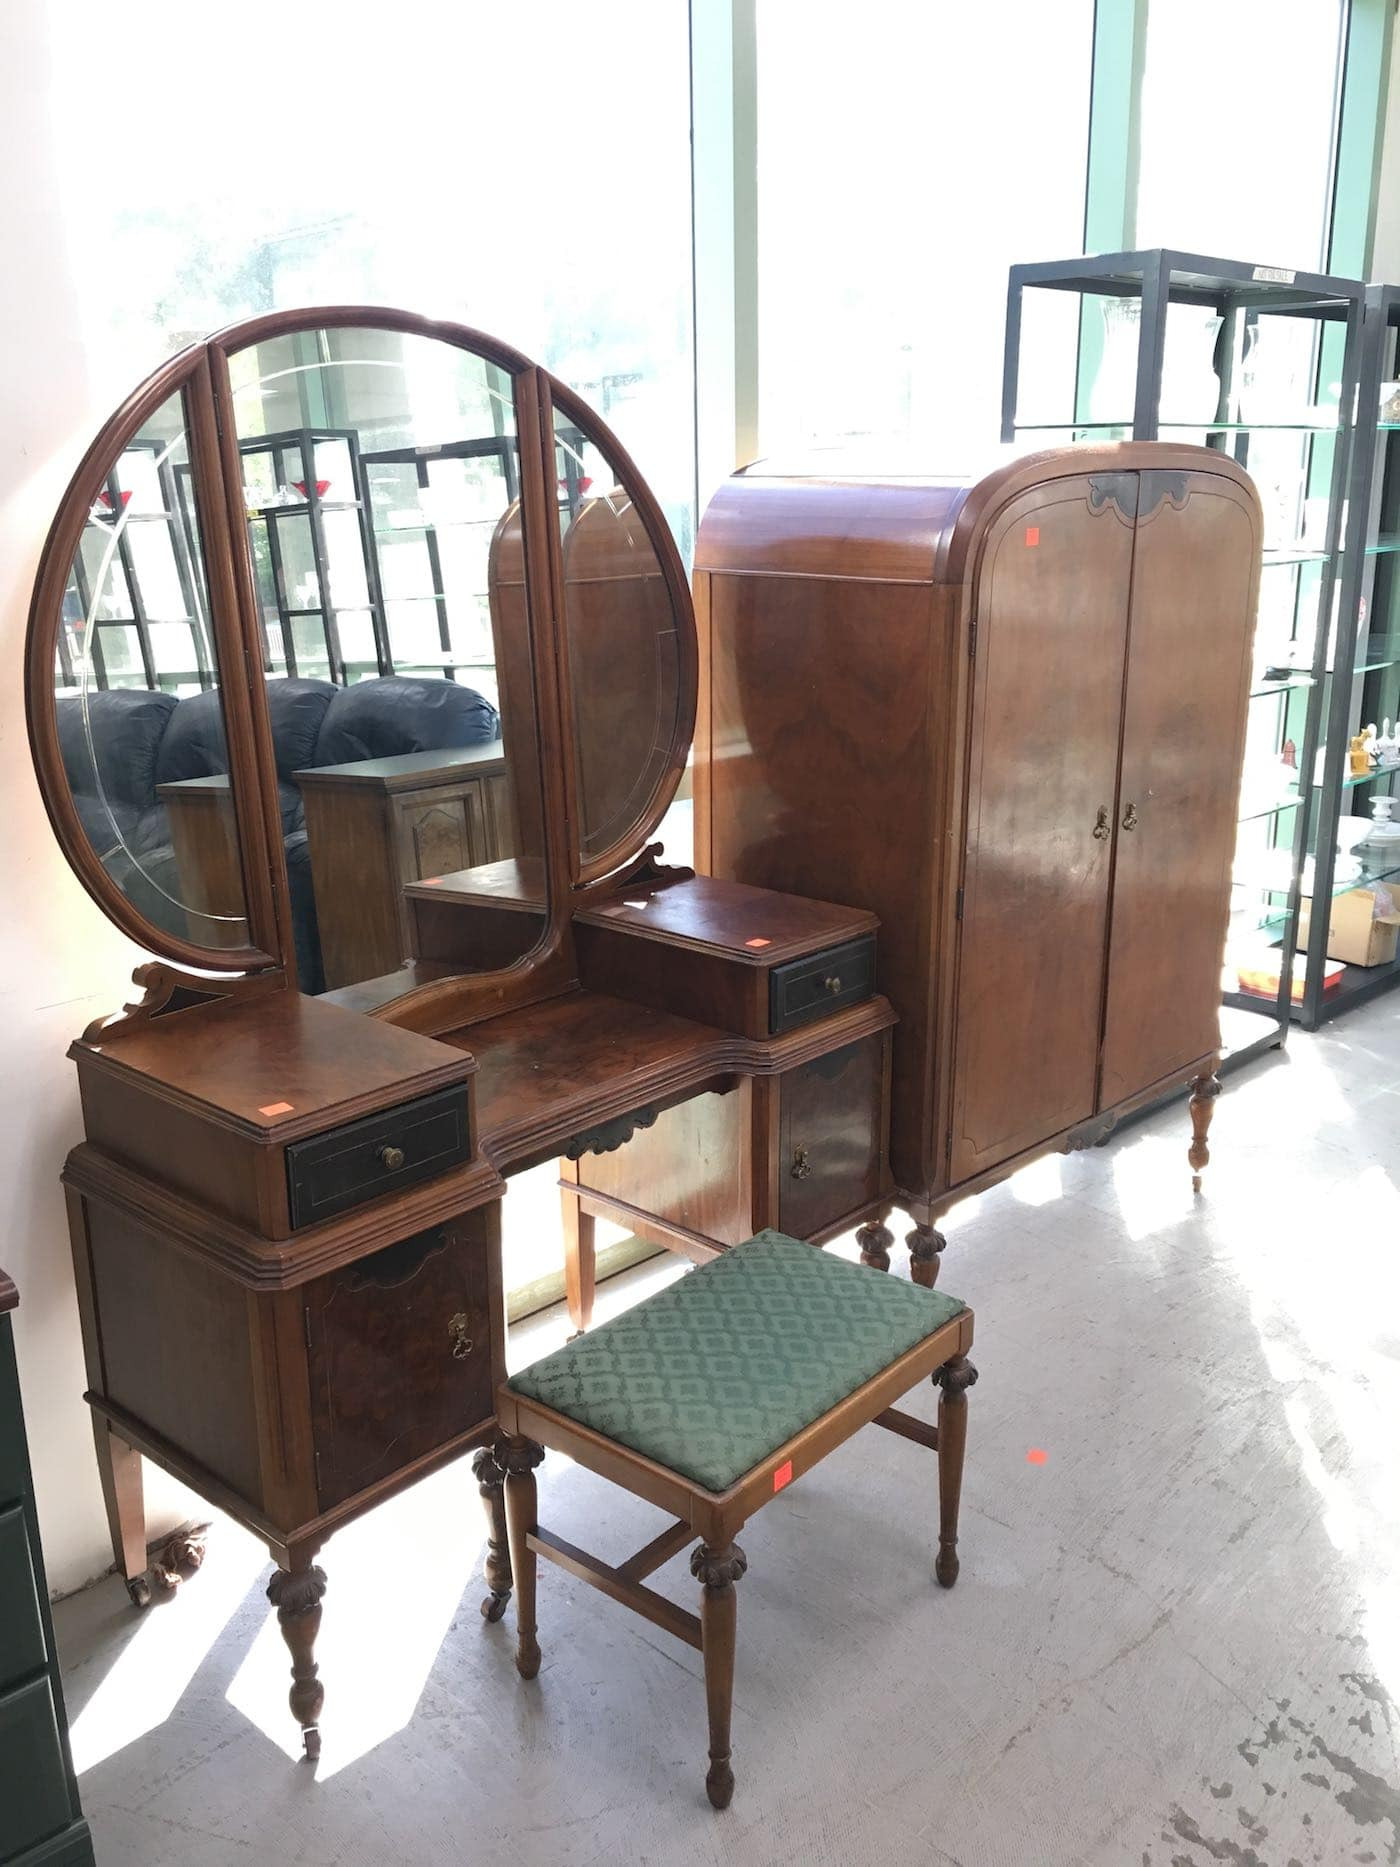 Antique Furniture Near Me Unique Gorgeous Furniture Finds at the Thrift Store Thrift